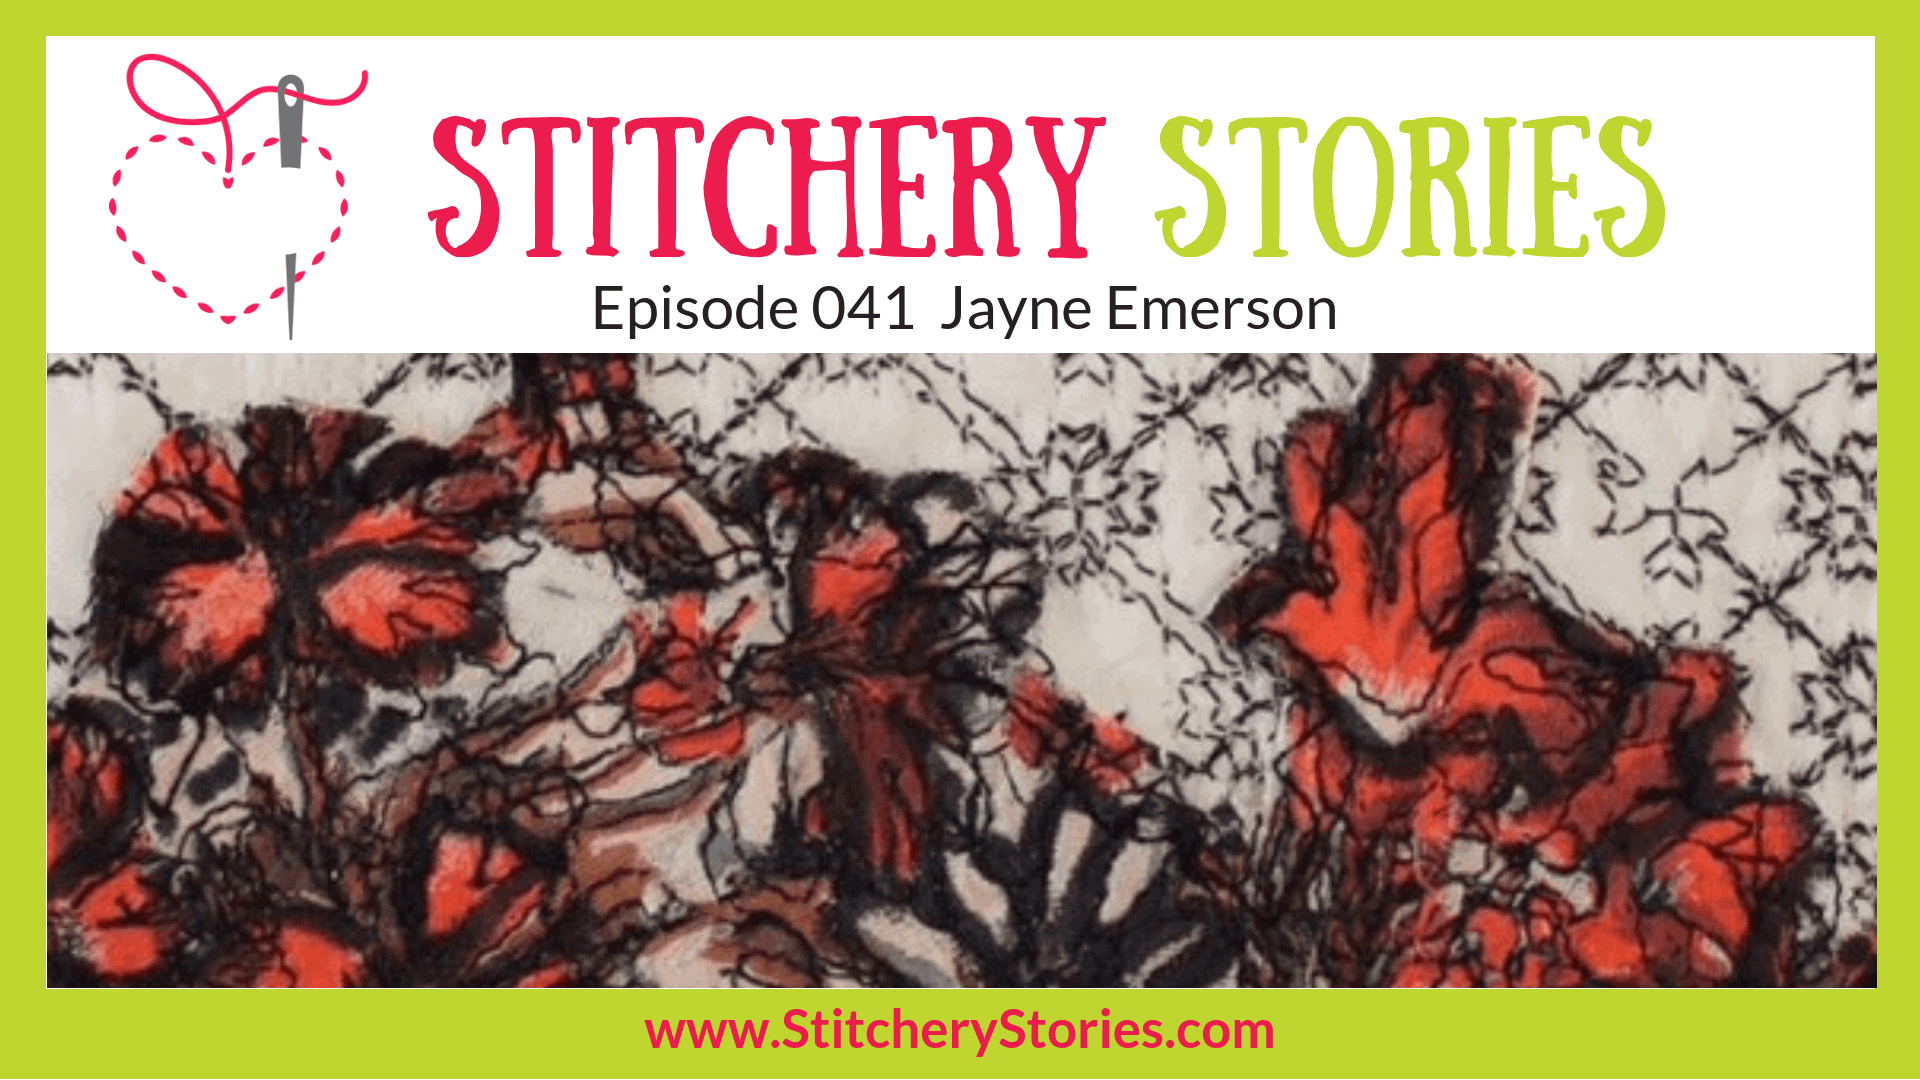 Jayne Emerson Textile Designer Stitchery Stories Textile Art Podcast Wide Art